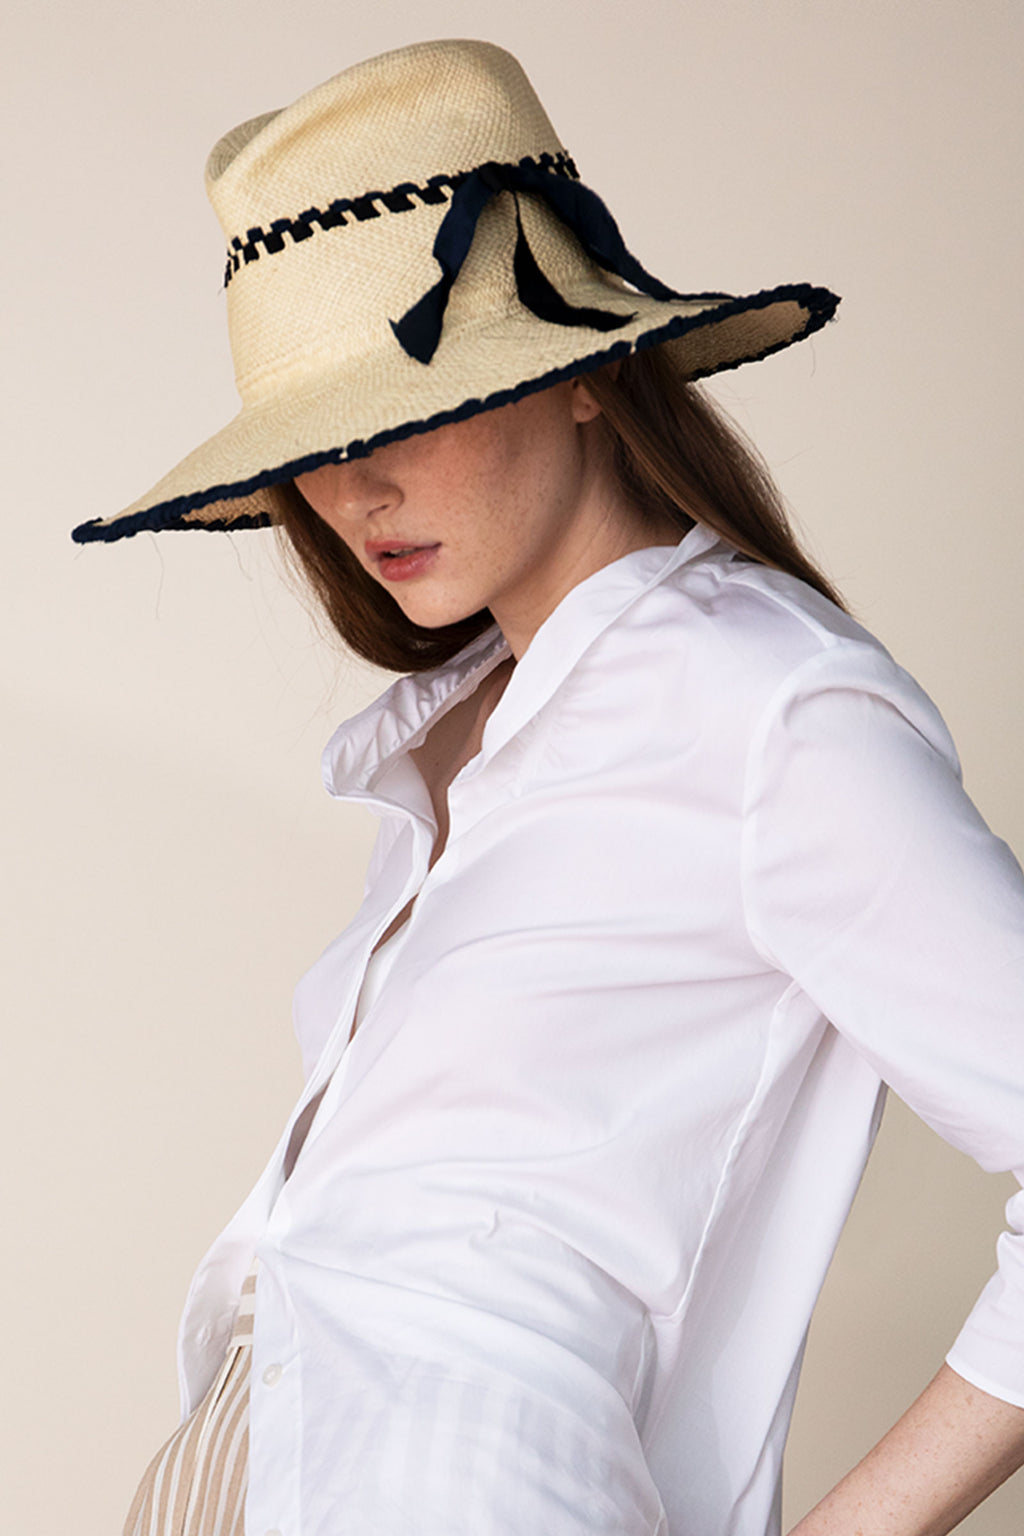 Lola Ehlrich Metro Tile Straw Hat In Dark